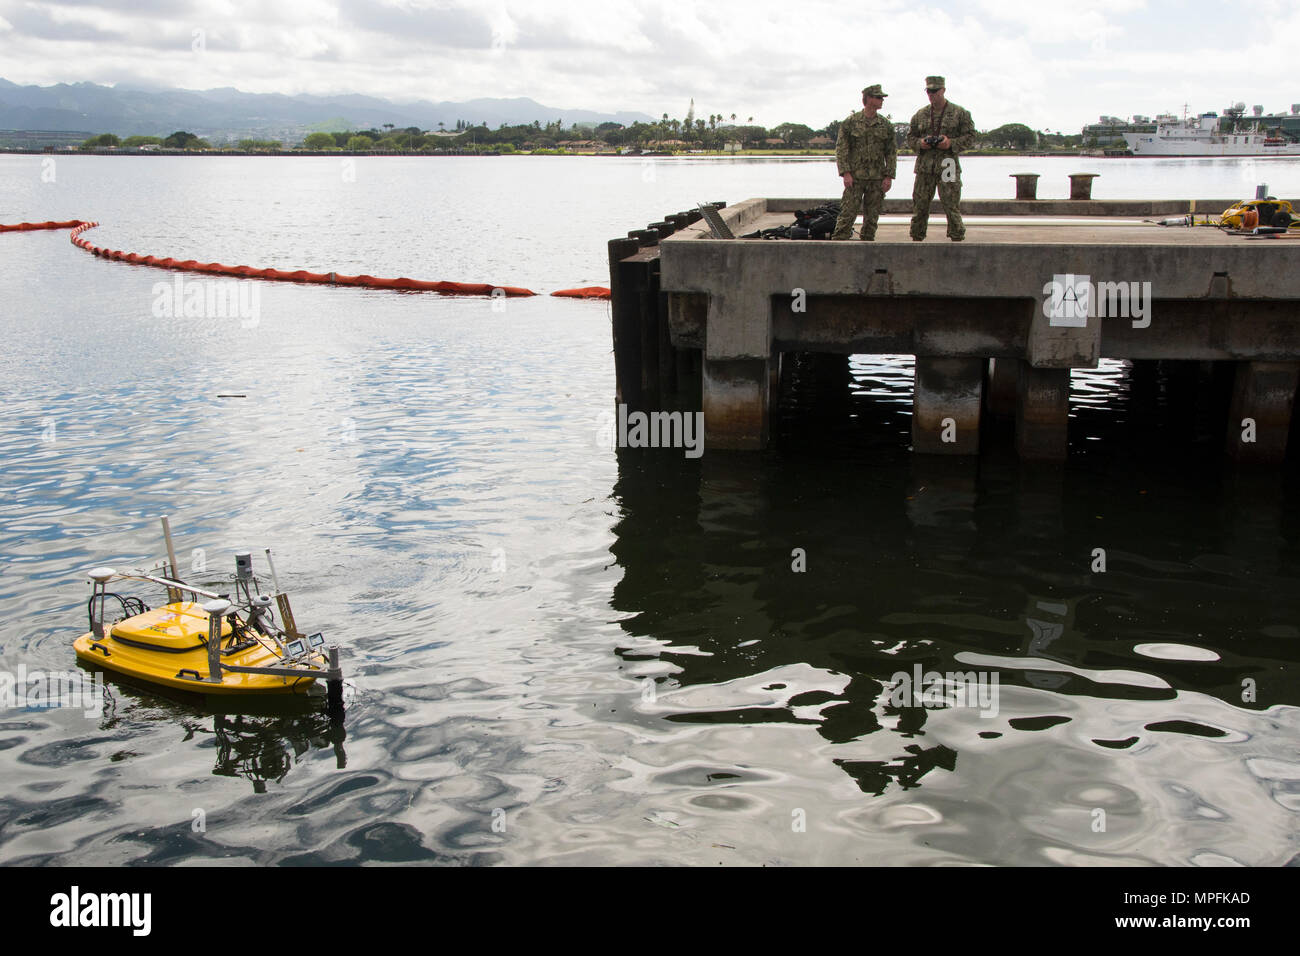 Navy underwater construction team members demonstrate the capabilities of a Multifunctional Assessment Reconnaissance Vehicle (MARV) to capture detailed engineering survey data.  Army and Navy divers assigned to engineer units partnered for a technology demonstration at Pearl Harbor Victor Pier 3, March 3, 2017. The MARV is a remote operated vehicle equipped with sensors and cameras, used for collecting data to identify damaged areas beneath the pier. Stock Photo